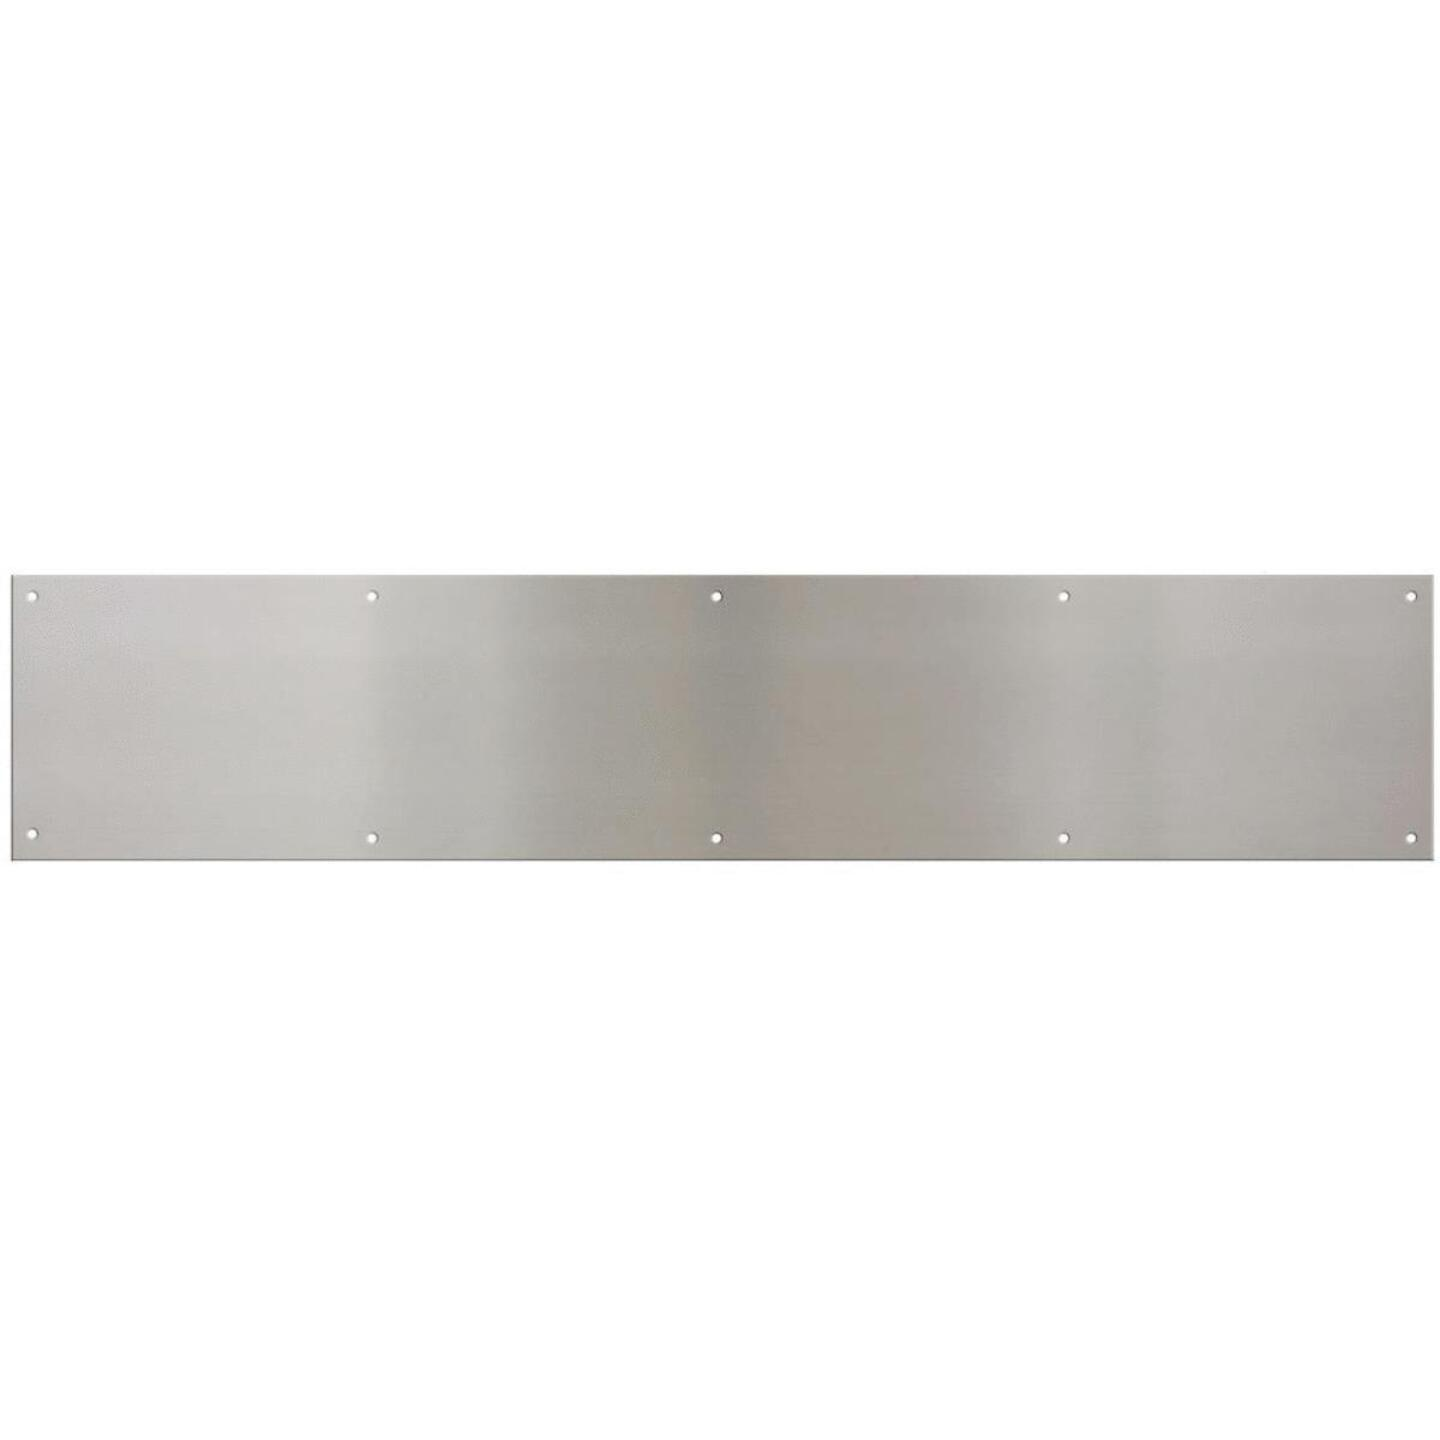 National 6 In. x 30 In. Satin Nickel Aluminum Kickplate Image 1